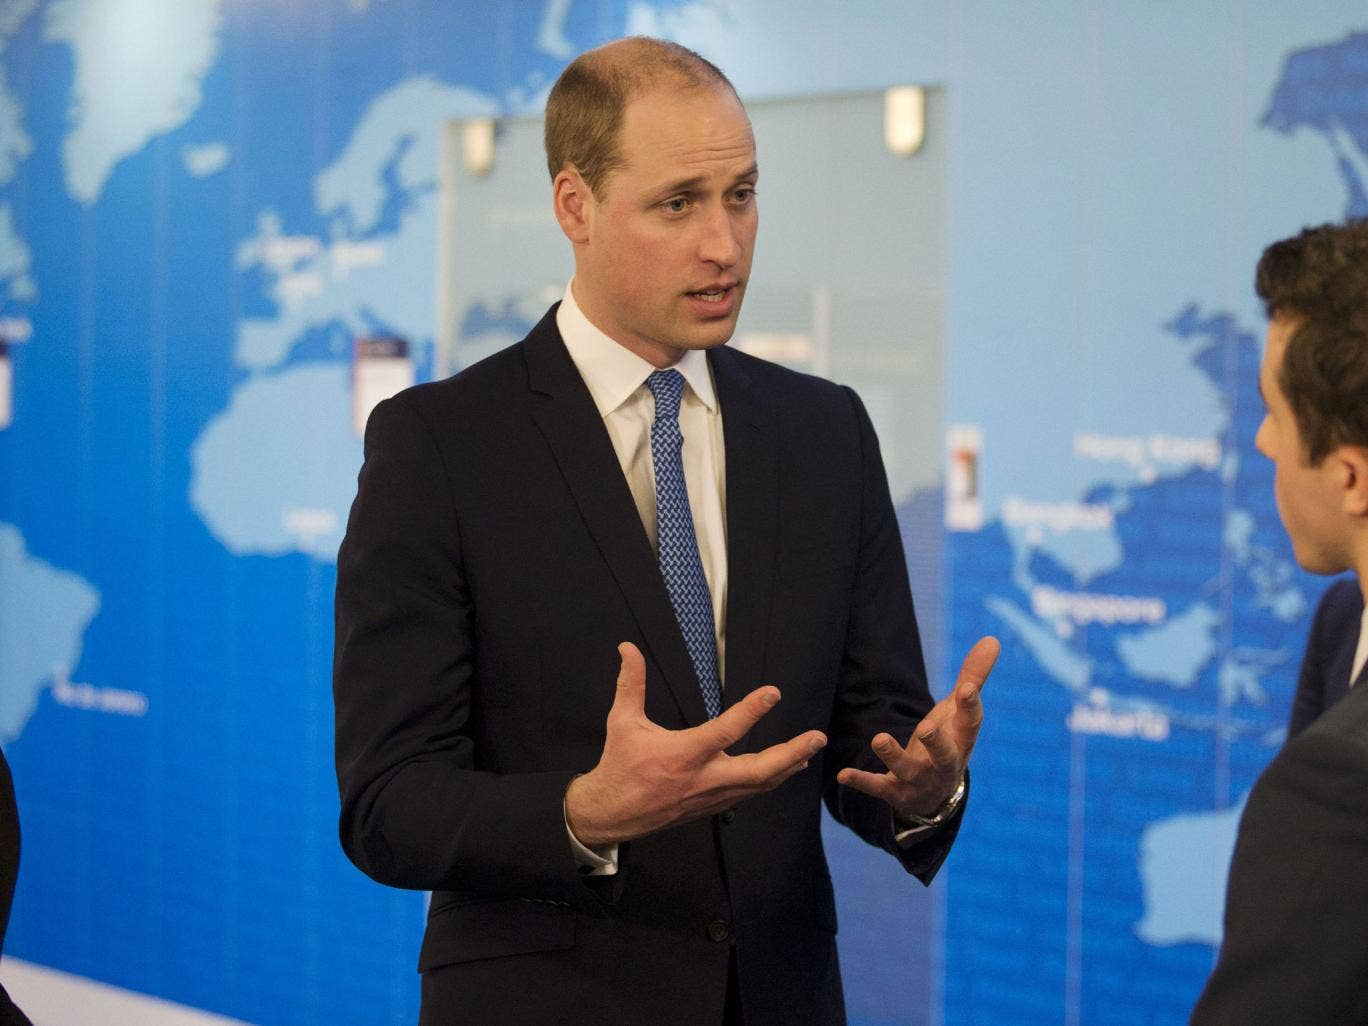 Theresa May Greets Prince William With Awkwardly Low Curtsy During